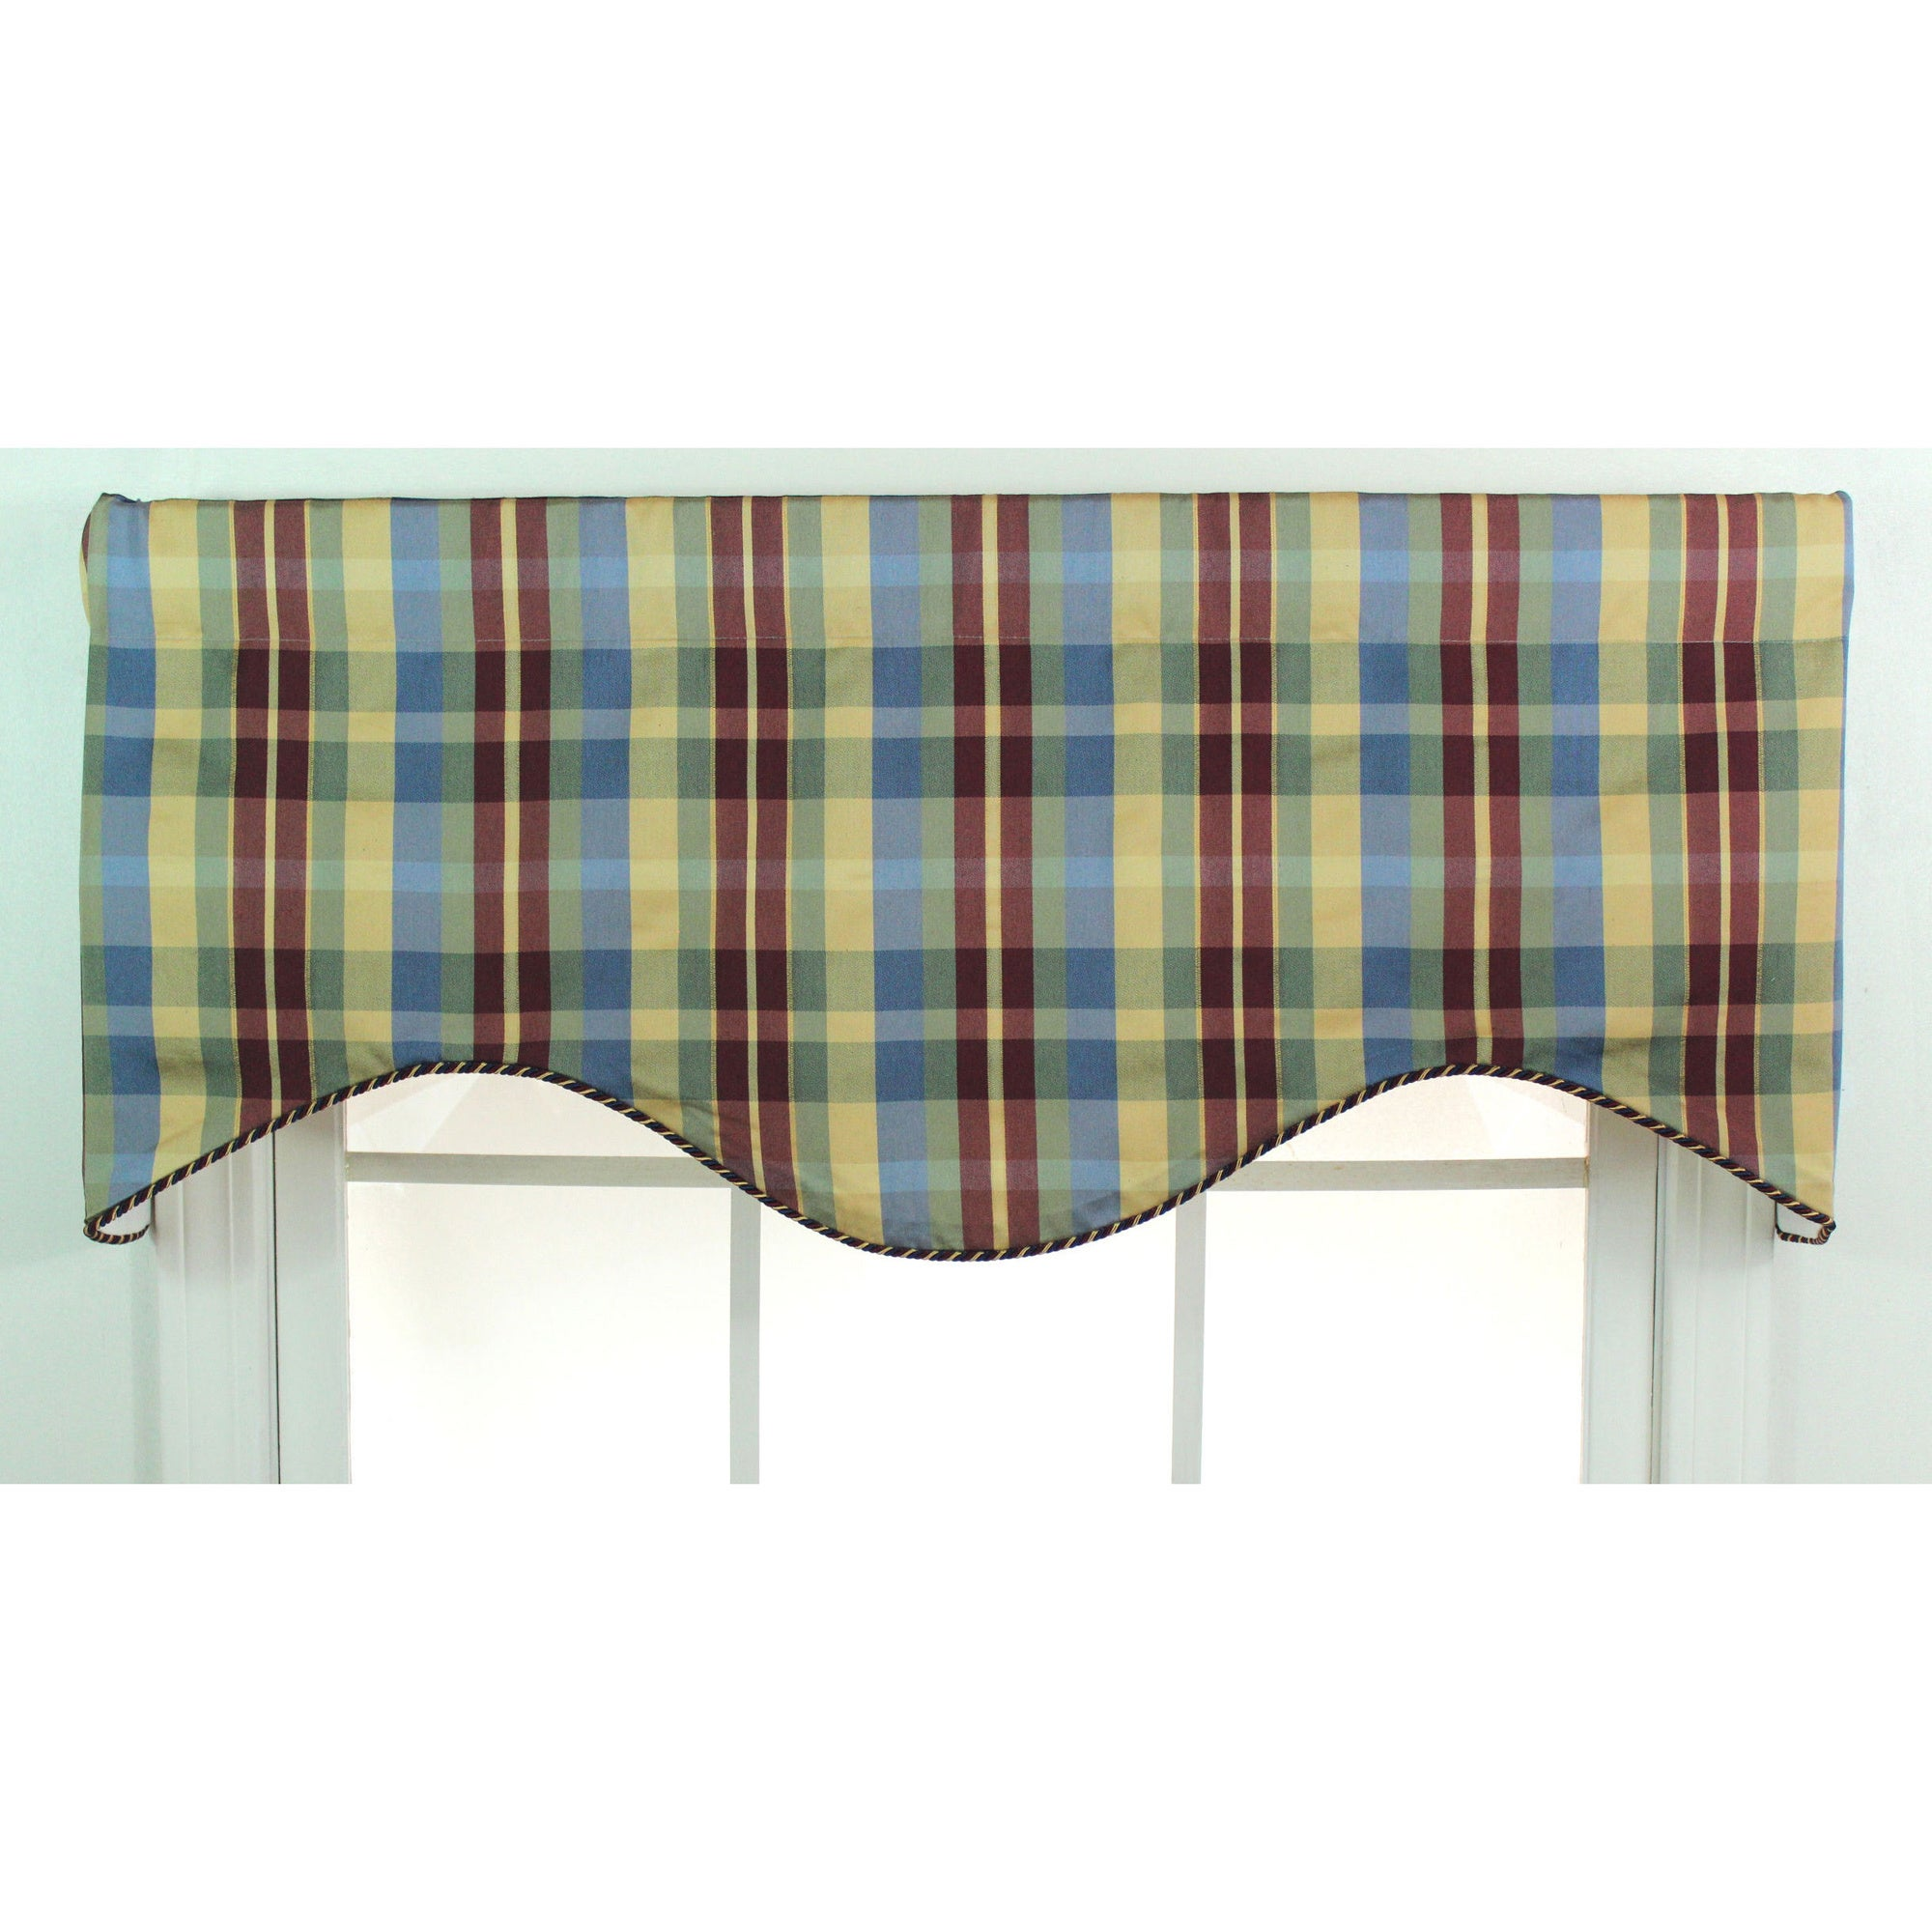 Rlf Home Terpel Plaid Cotton Cornice Window Valance at Sears.com